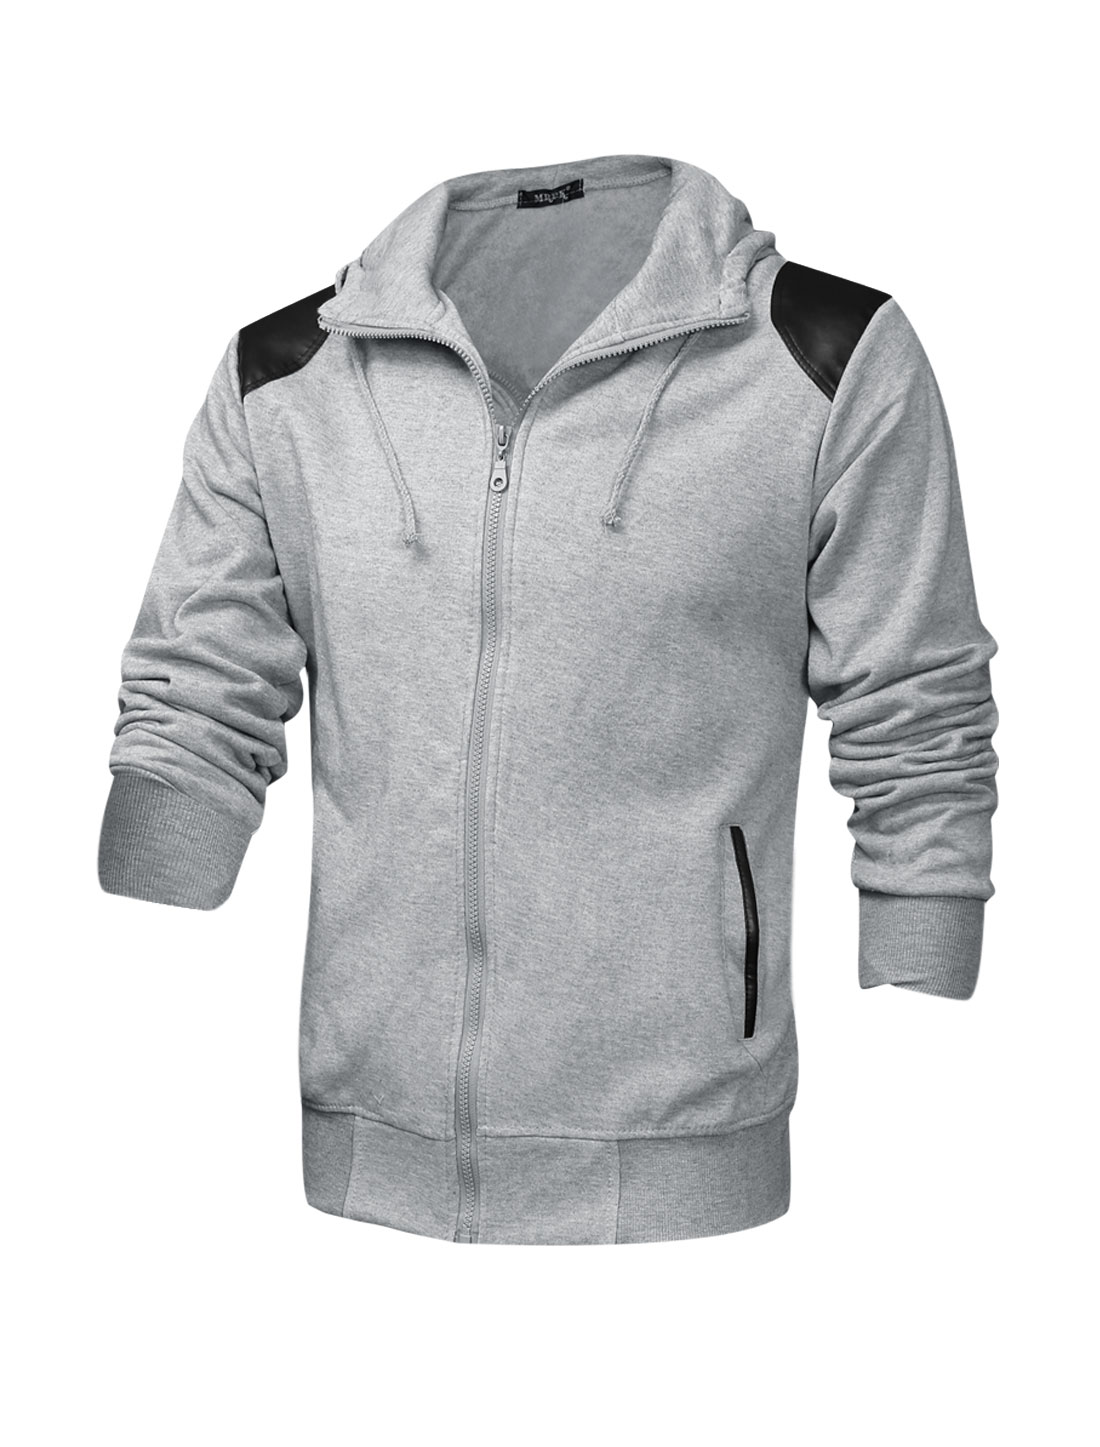 Men Drawstring Hooded Design Imitation Leather Panel Casual Jacket Light Gray M